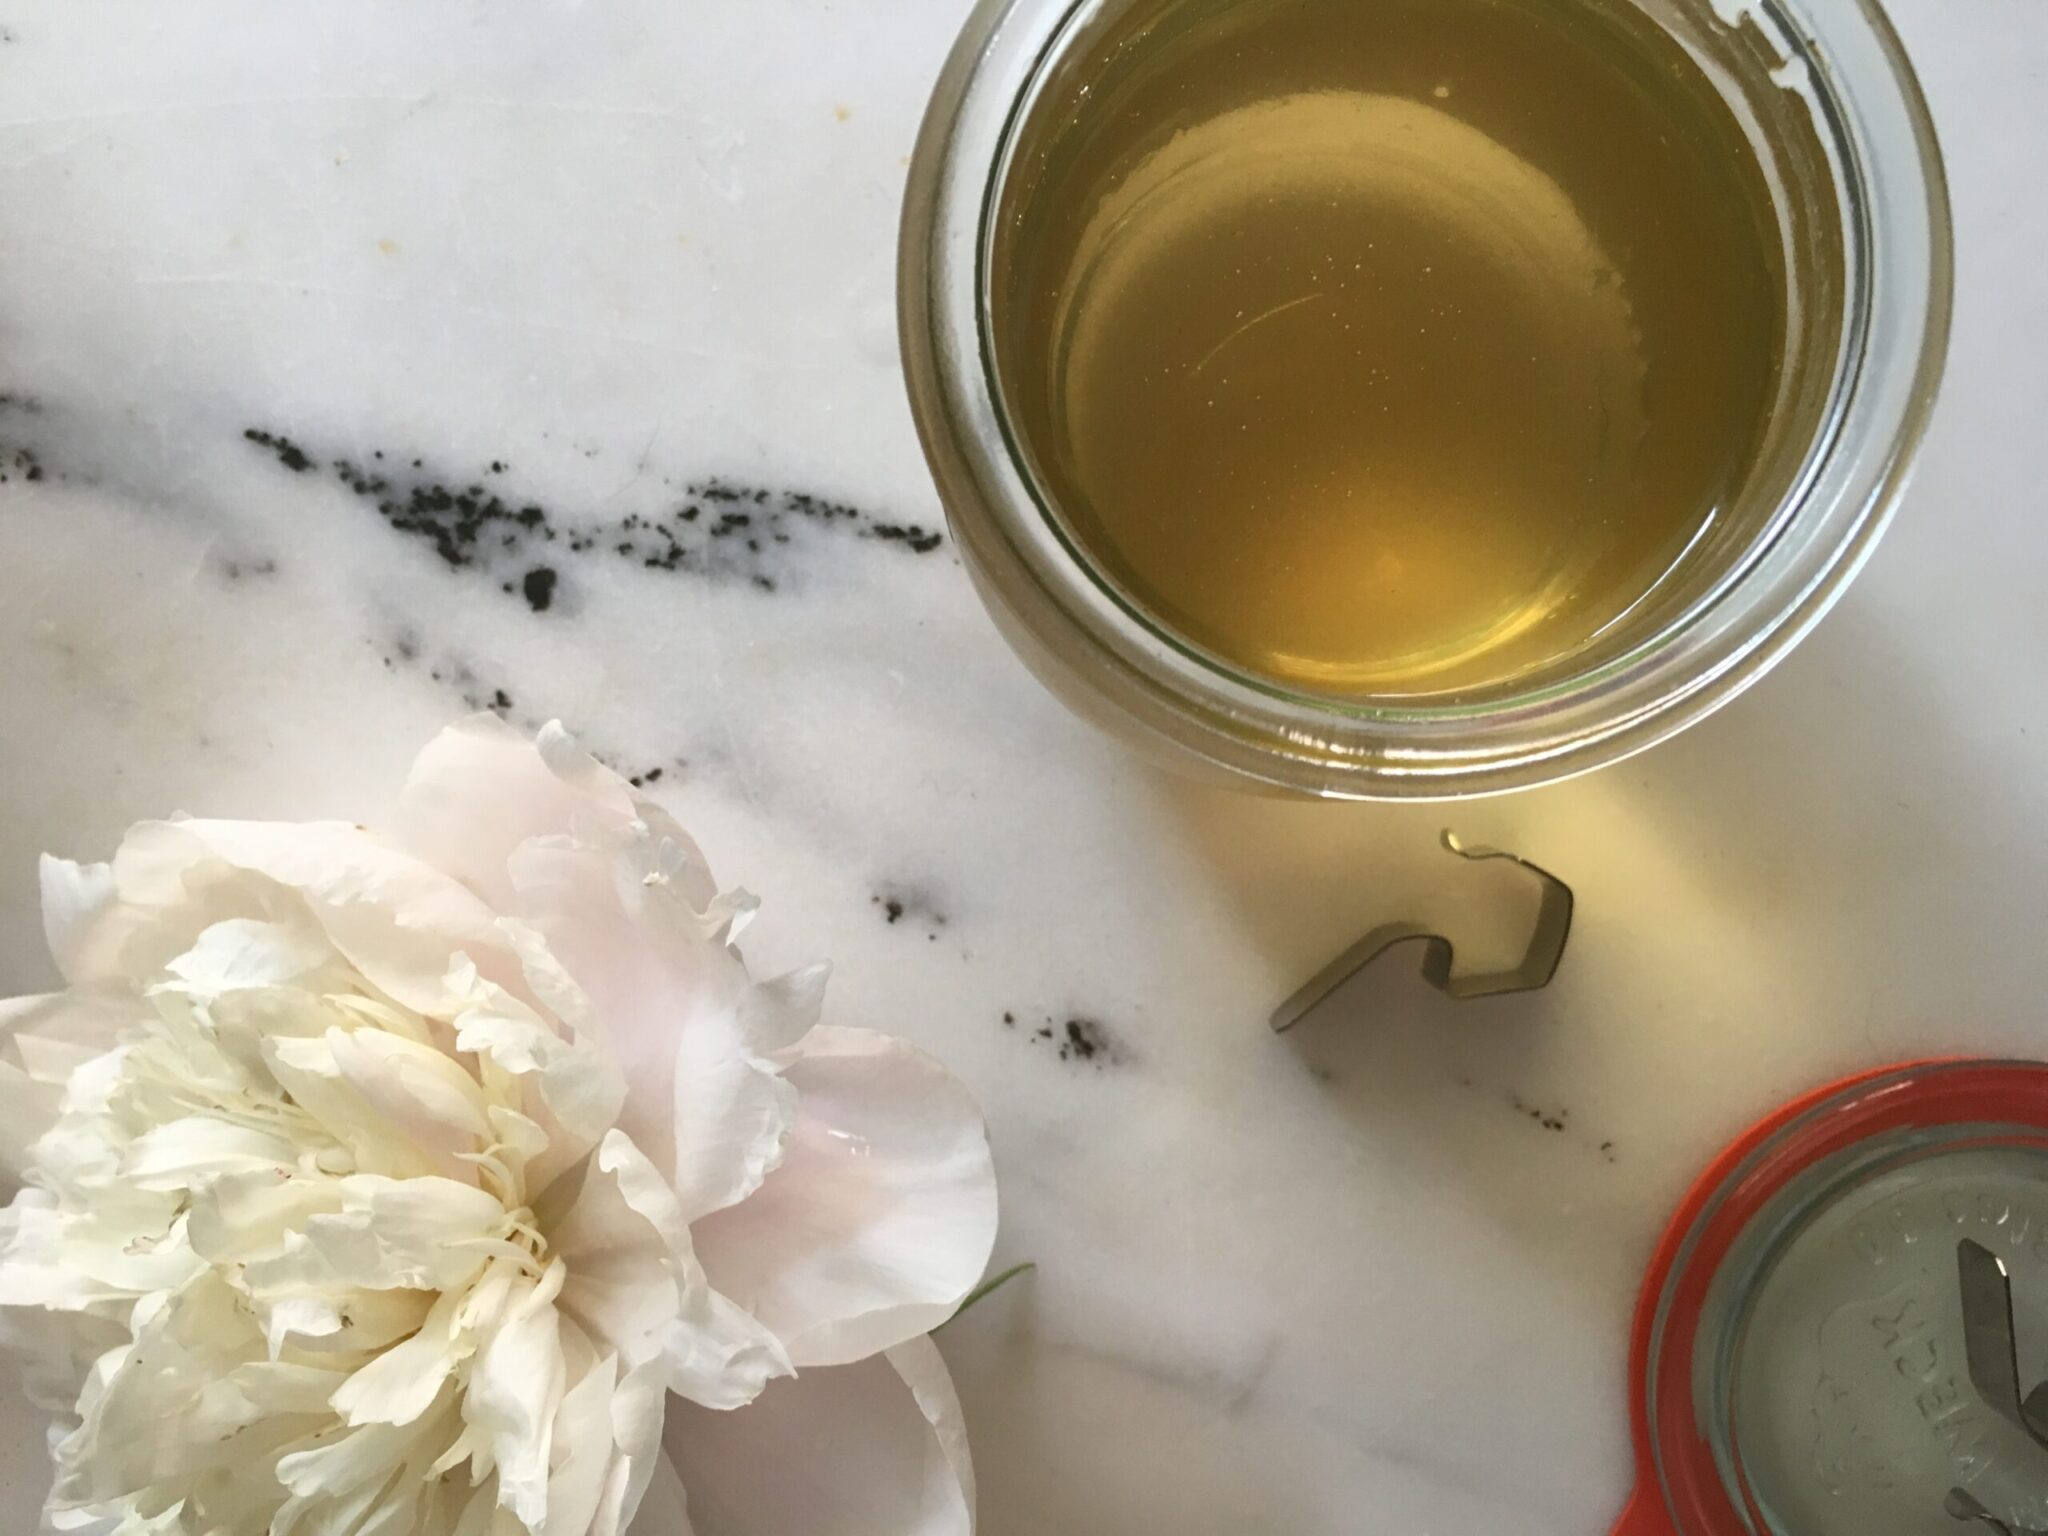 PEONY FLOWER SIMPLE SYRUP